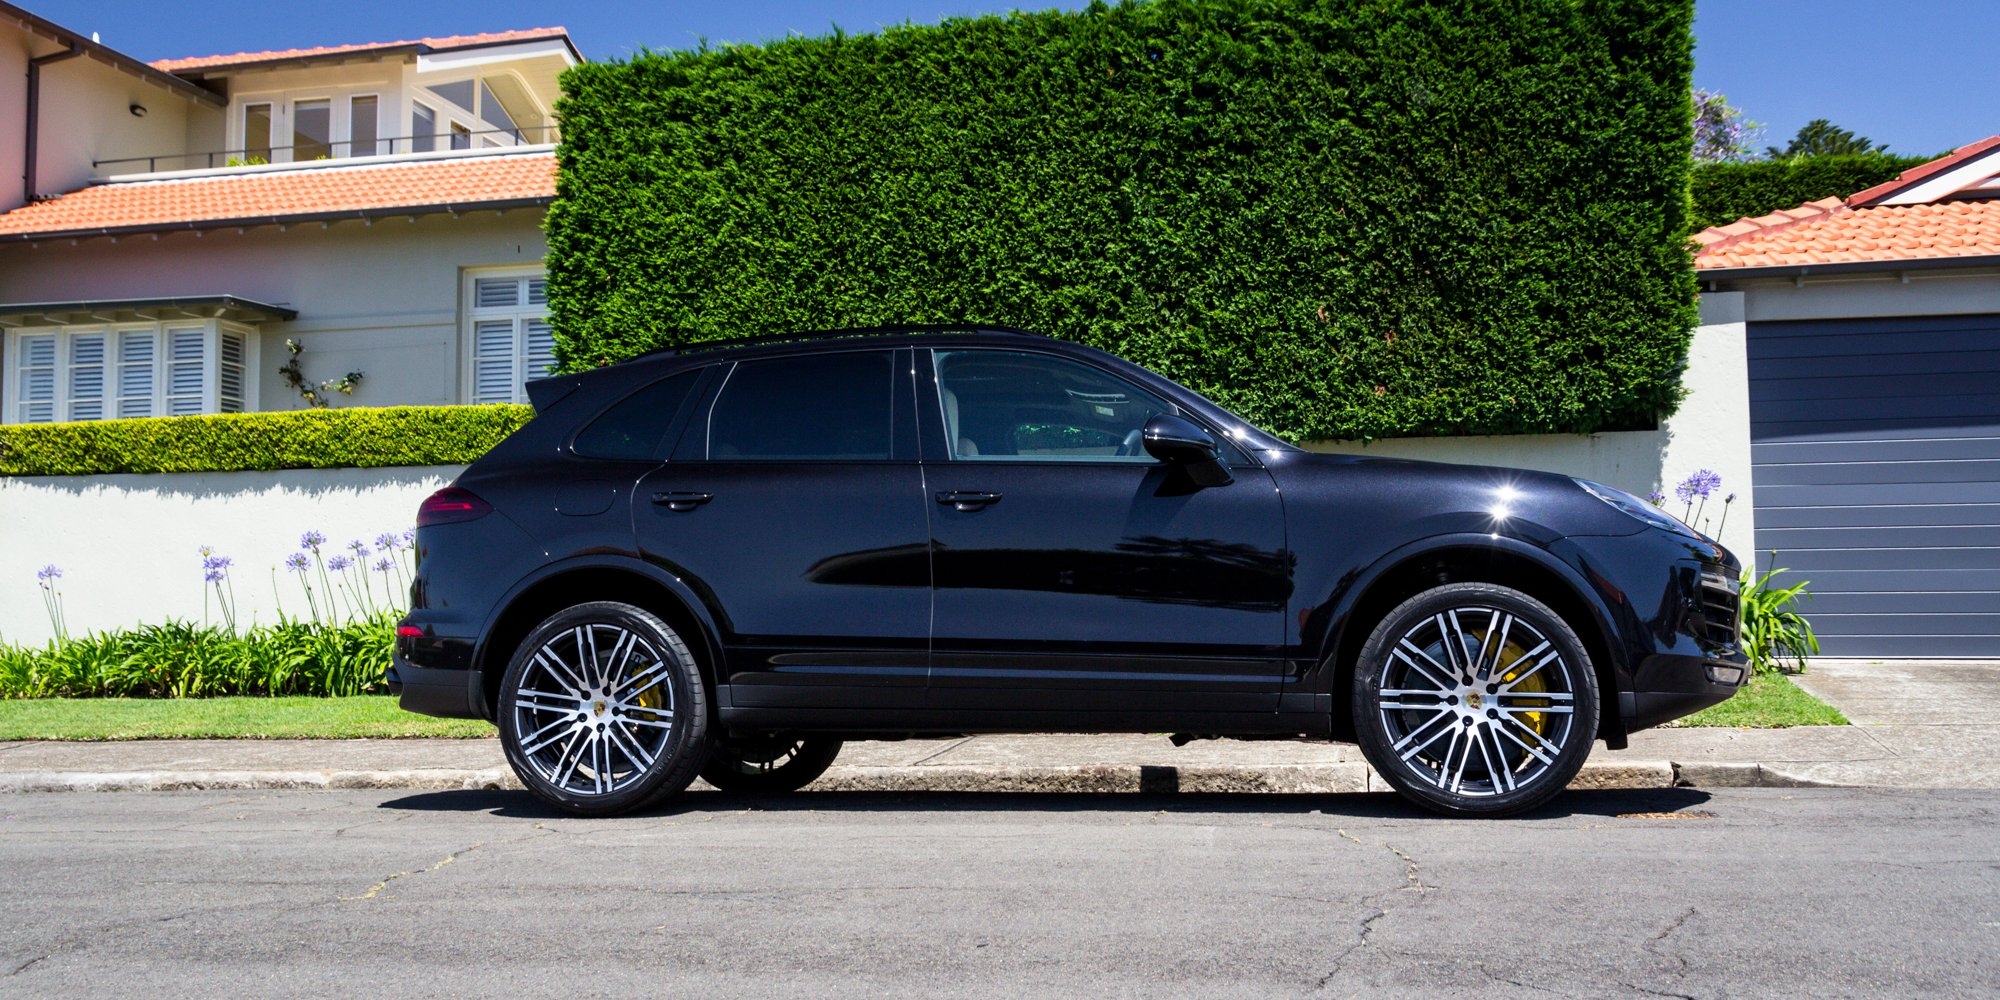 2016 Porsche Cayenne Turbo S Review  Photos  CarAdvice